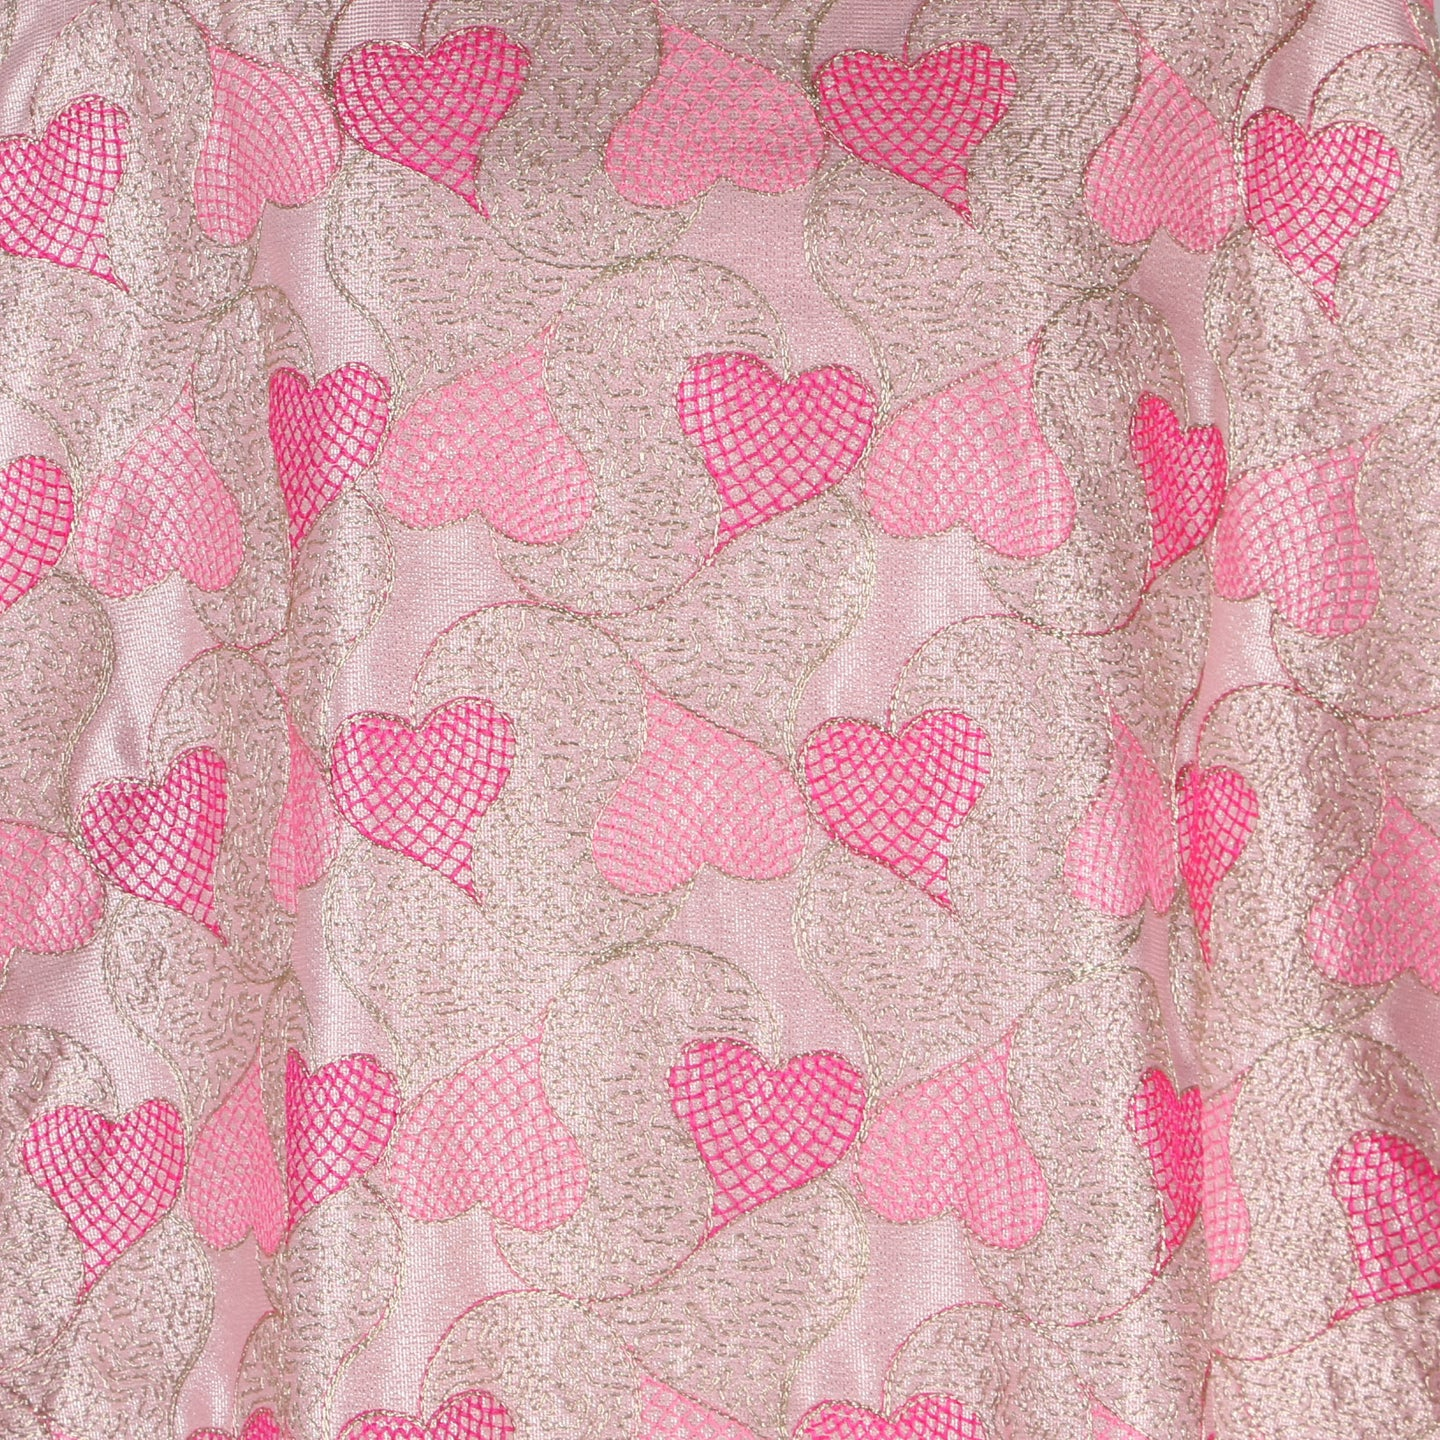 Machine Embroidered Fabric Design # 4125 -Baby Pink - 5 Yard Piece